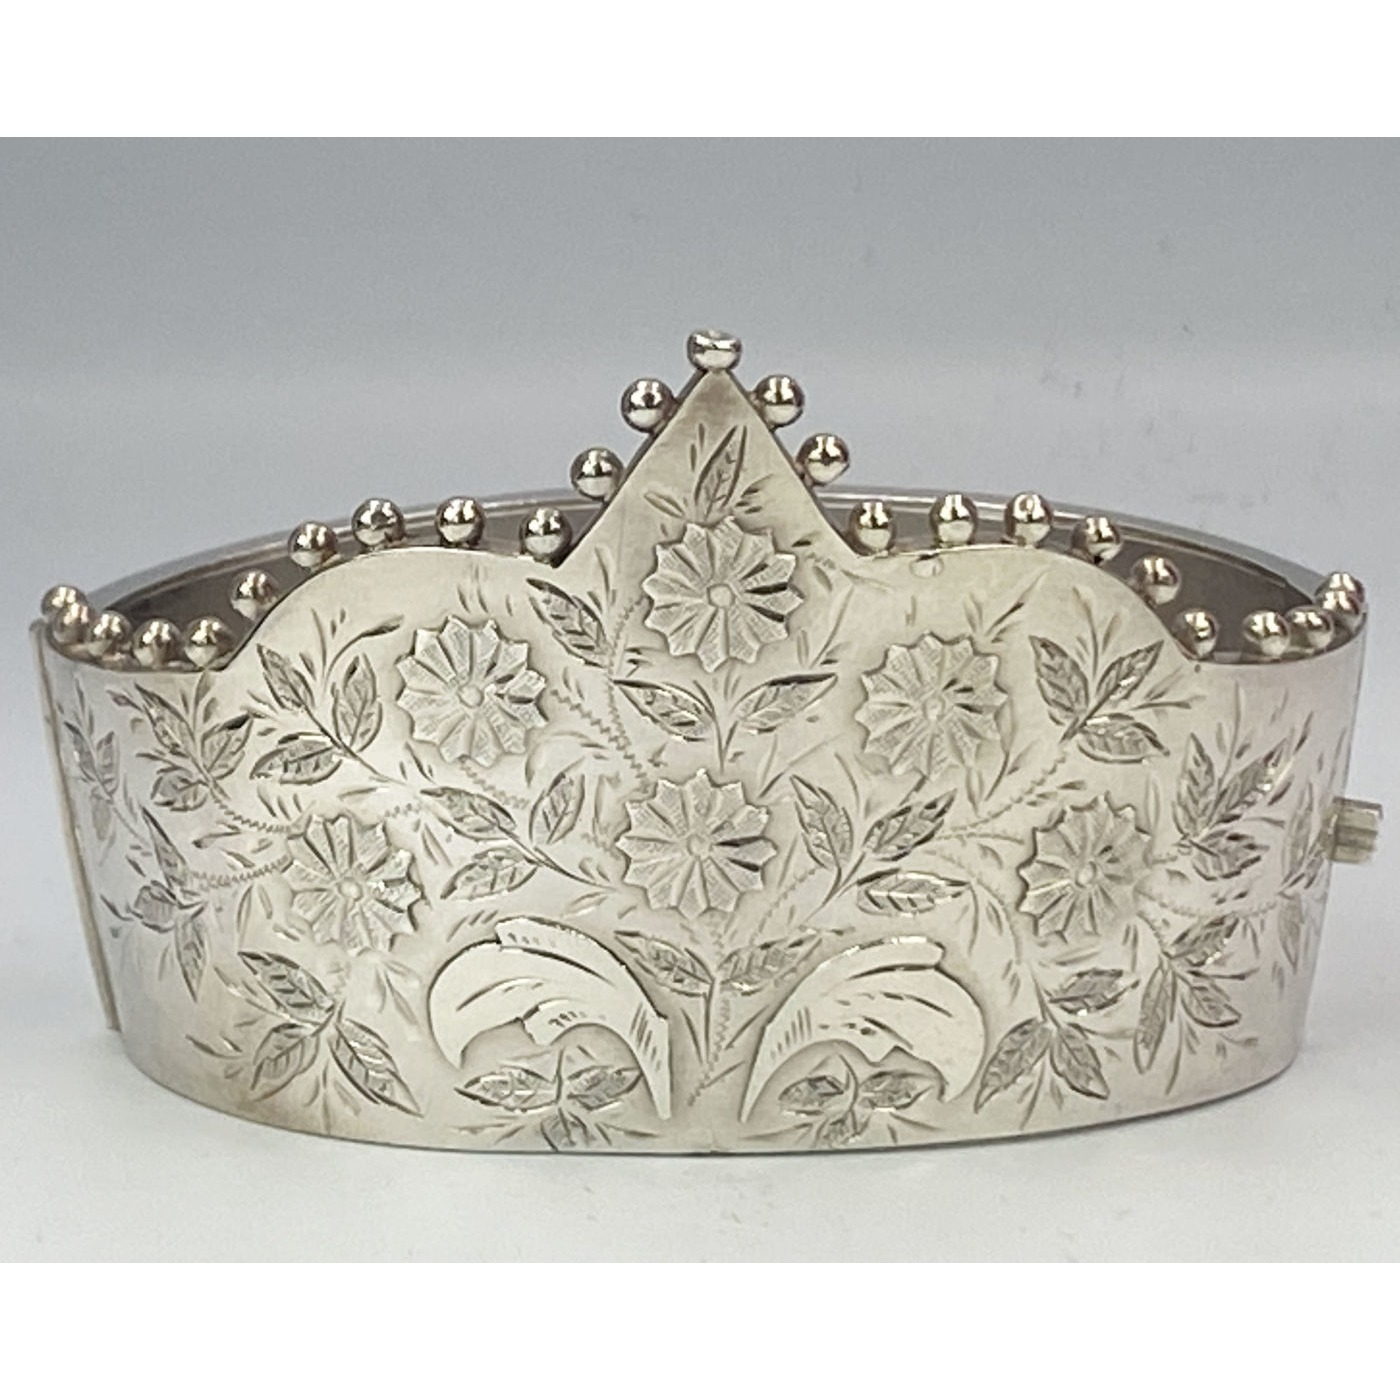 Rare Crown Shaped, Applied Flowers, English Silver Bangle March 17, 1885